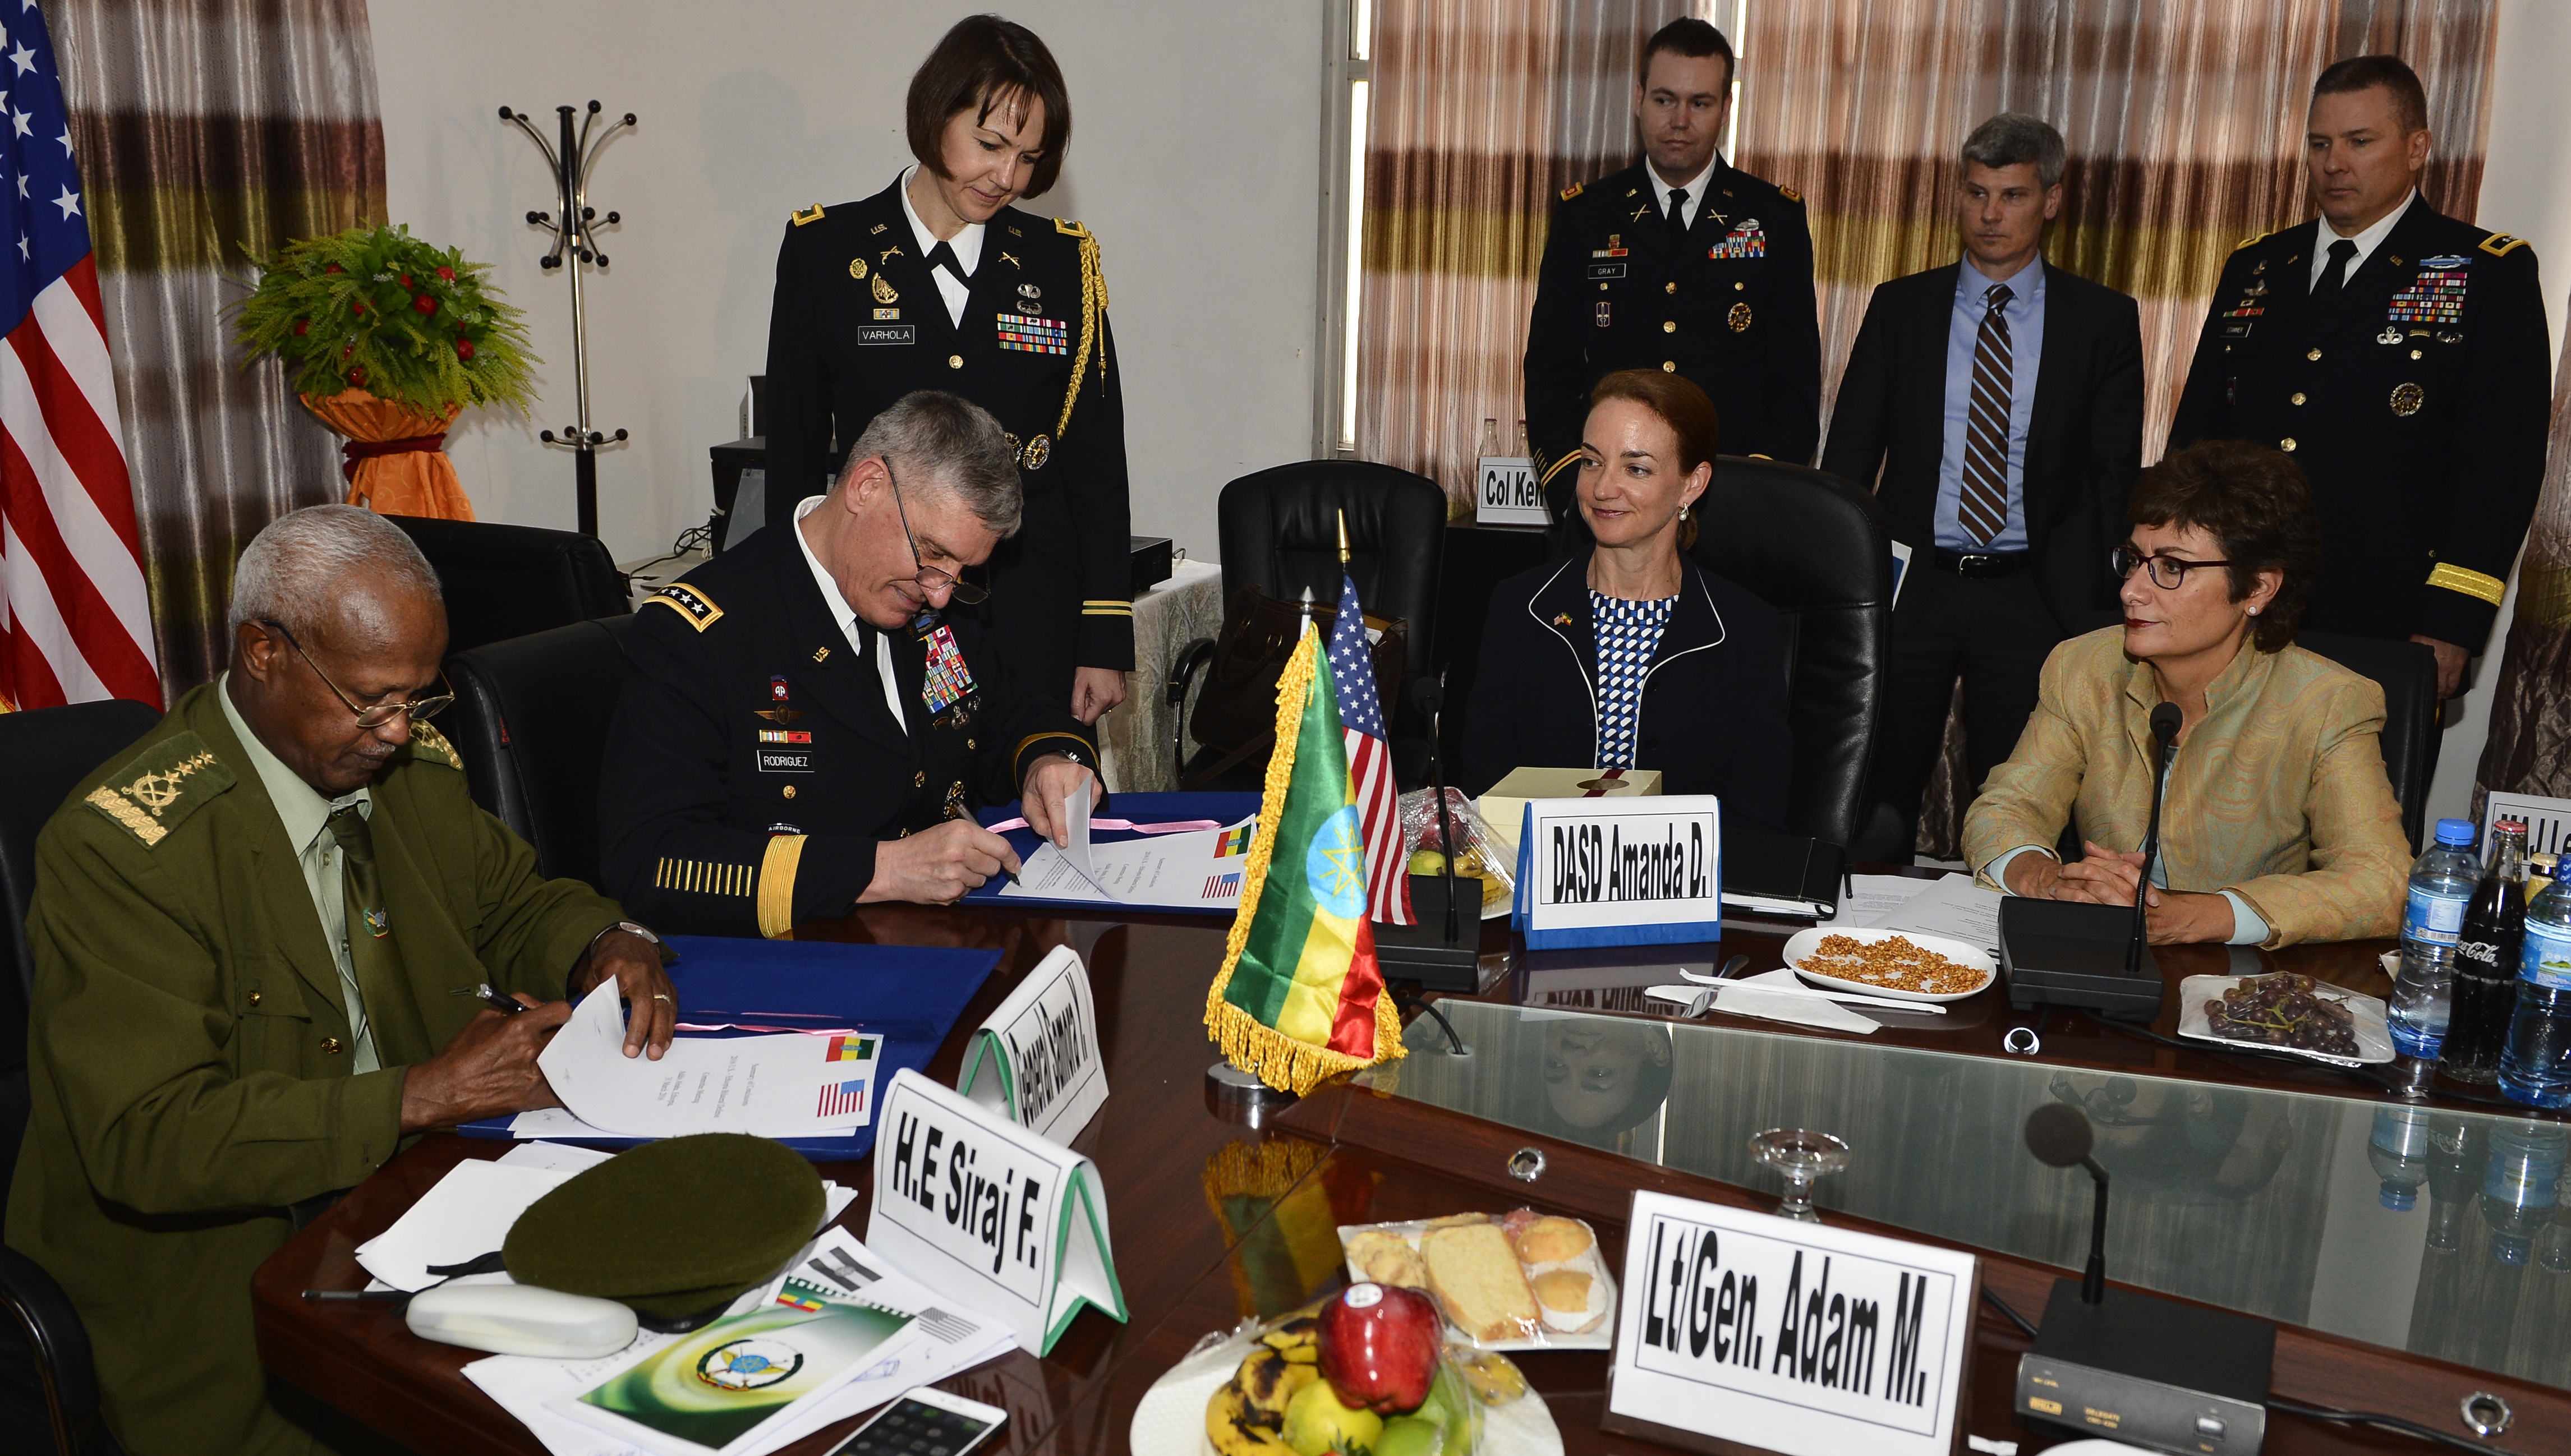 Gen. David Rodriguez, Commander U.S. Africa Command and en. Samora Yunis, Chief of Staff Ethiopian National Defense Force sign the summary of conclusions after a Bilateral Defense Committee (BDC) meeting in Addis Ababa, Ethiopia, 31 March, 2016. The new agreement out lines the cross-exchange of logistics, services, supplies and support, as well as a way forward for the Africa Data-Sharing Network and combat engineering. (U.S. Air Force photo by Tech. Sgt. Dan DeCook)(U.S. Air Force photo by Tech. Sgt. Dan DeCook)